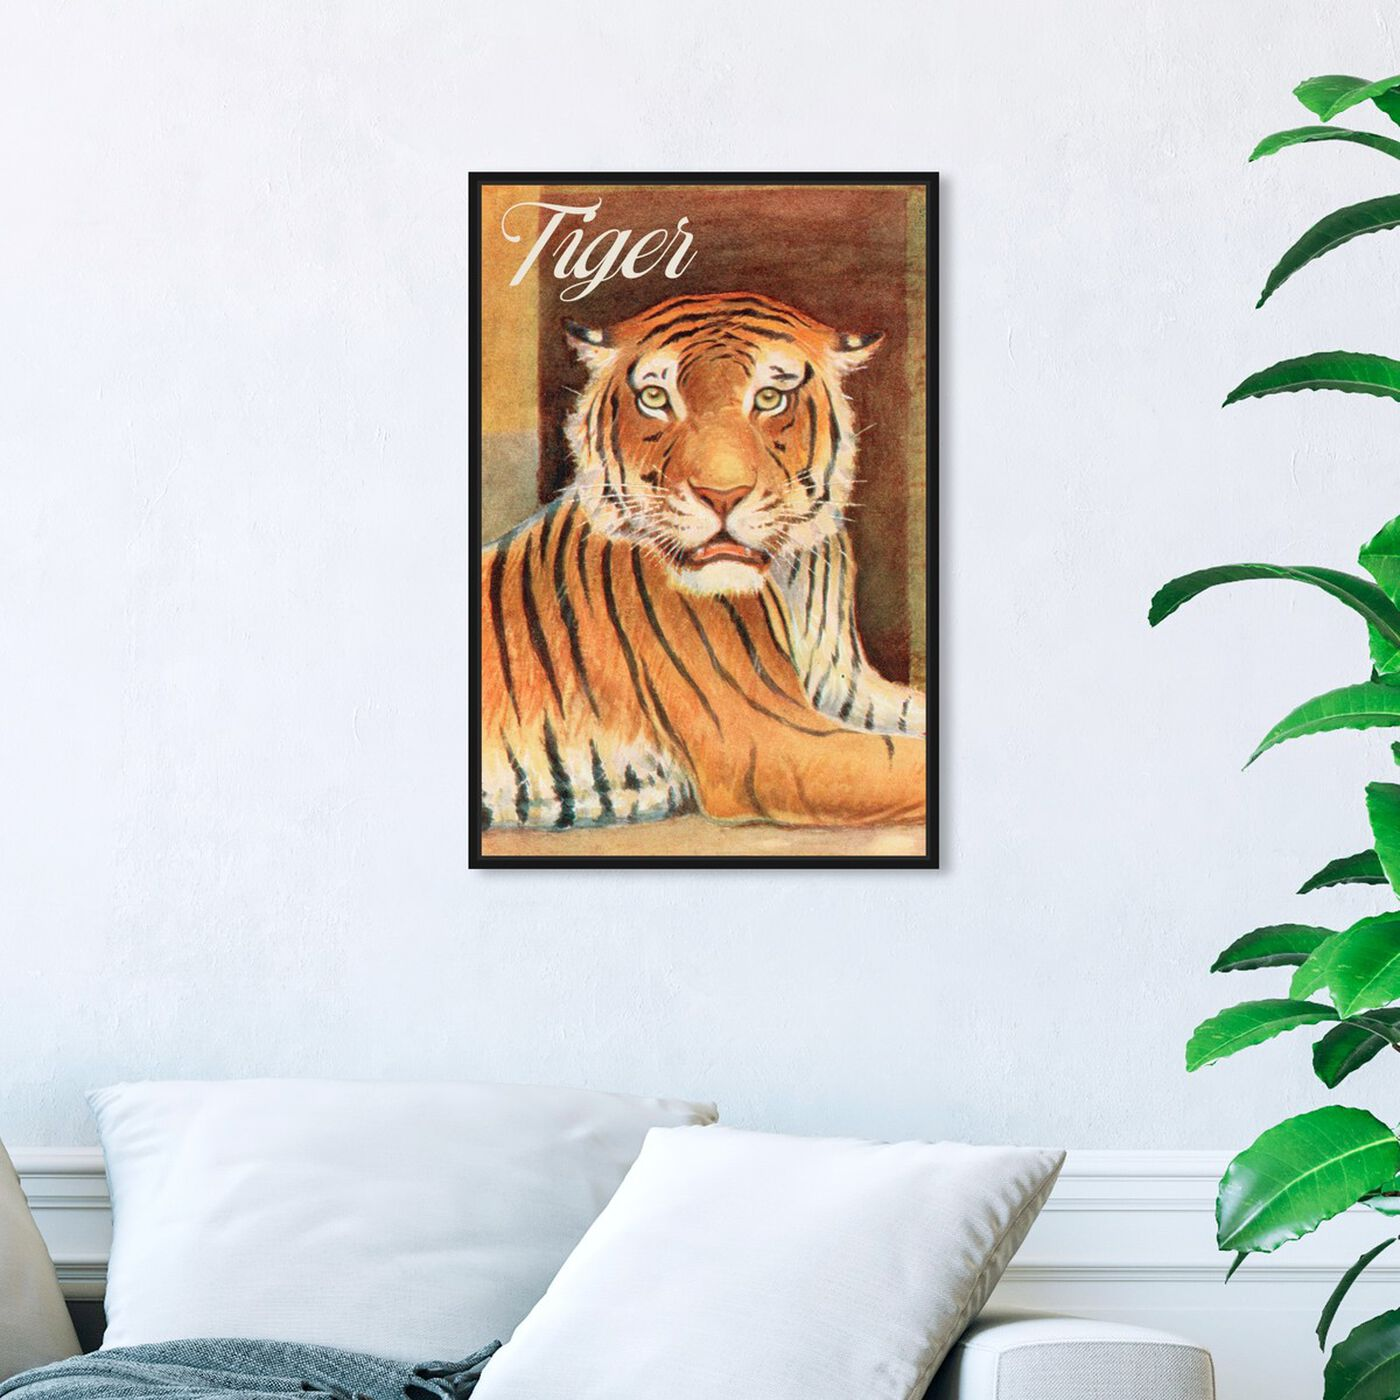 Hanging view of Tiger featuring animals and felines art.